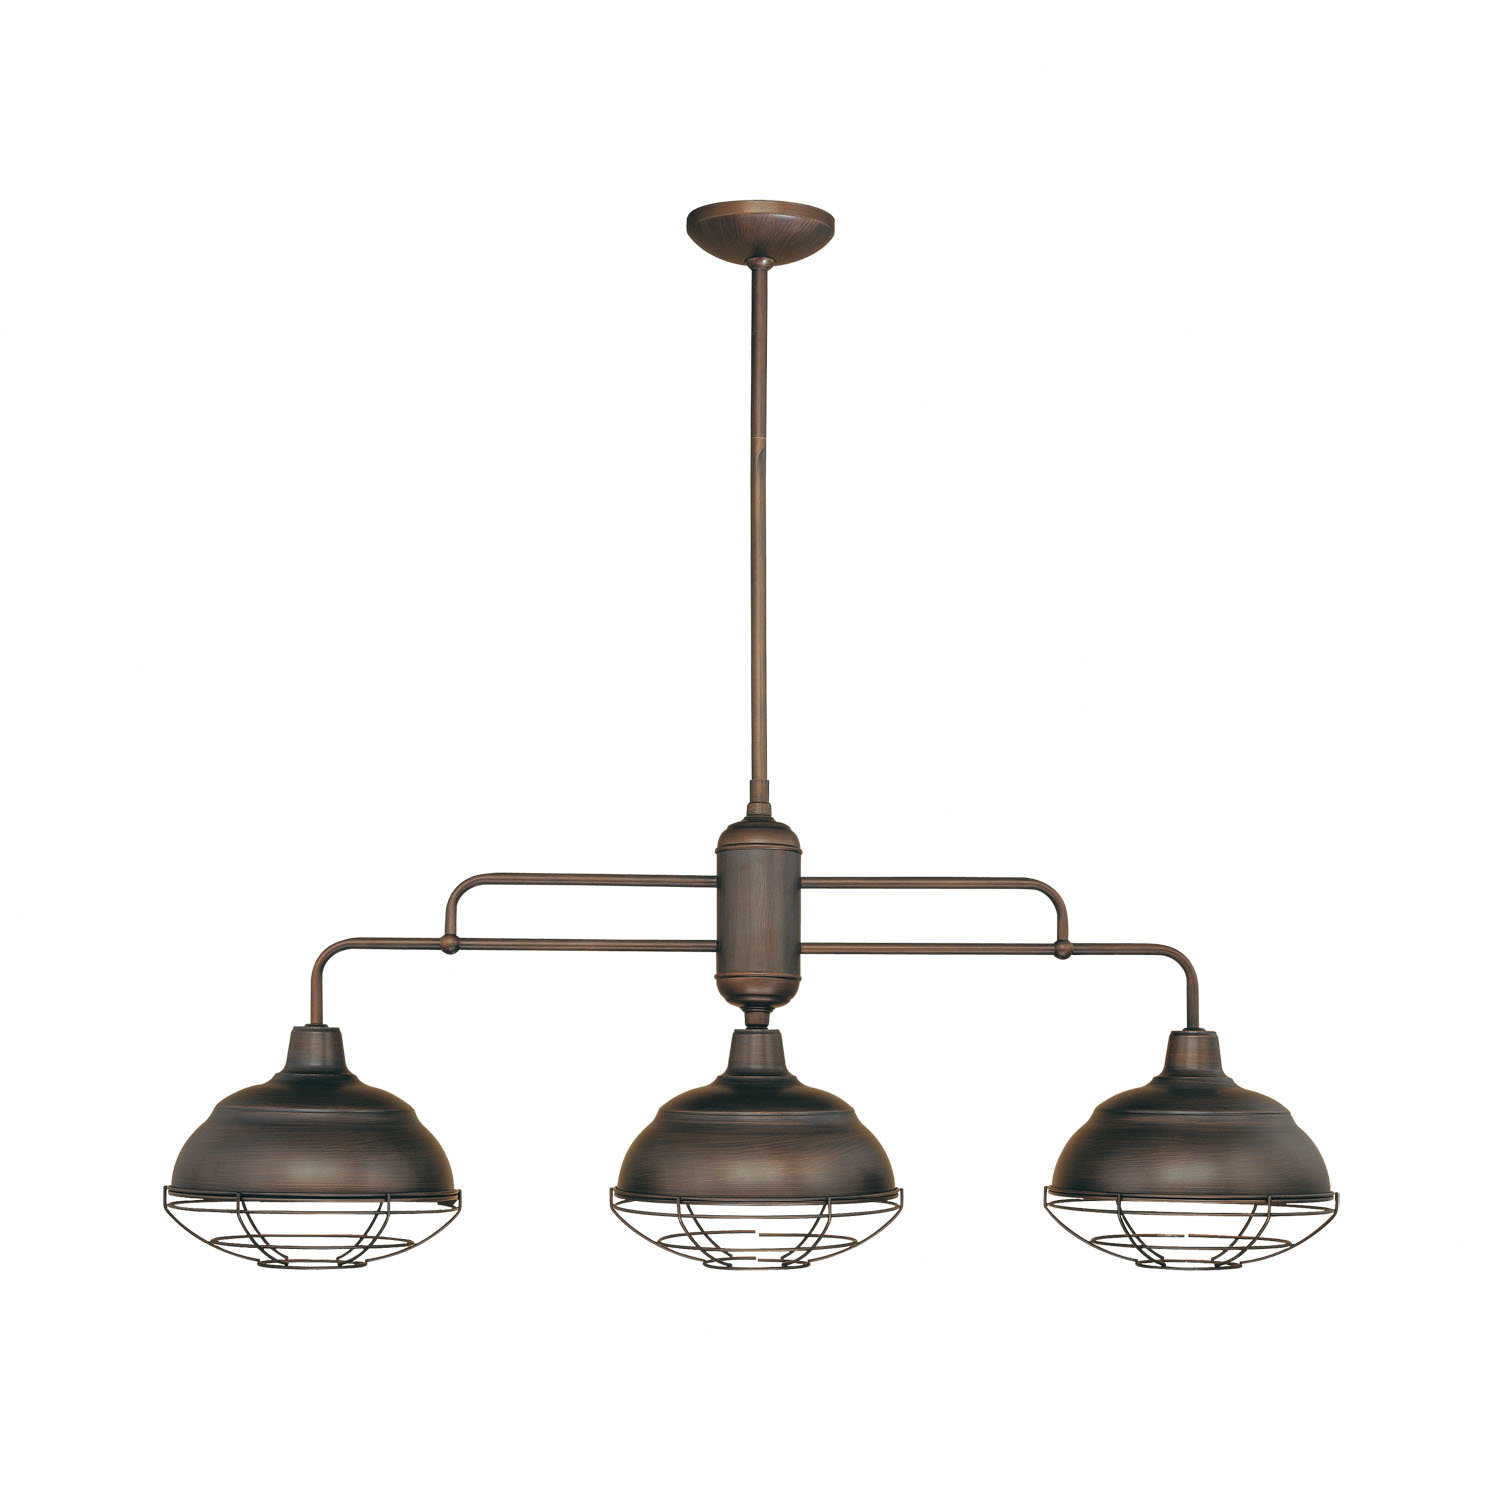 Dunson 3 Light Kitchen Island Pendant For Dunson 3 Light Kitchen Island Pendants (Gallery 2 of 30)